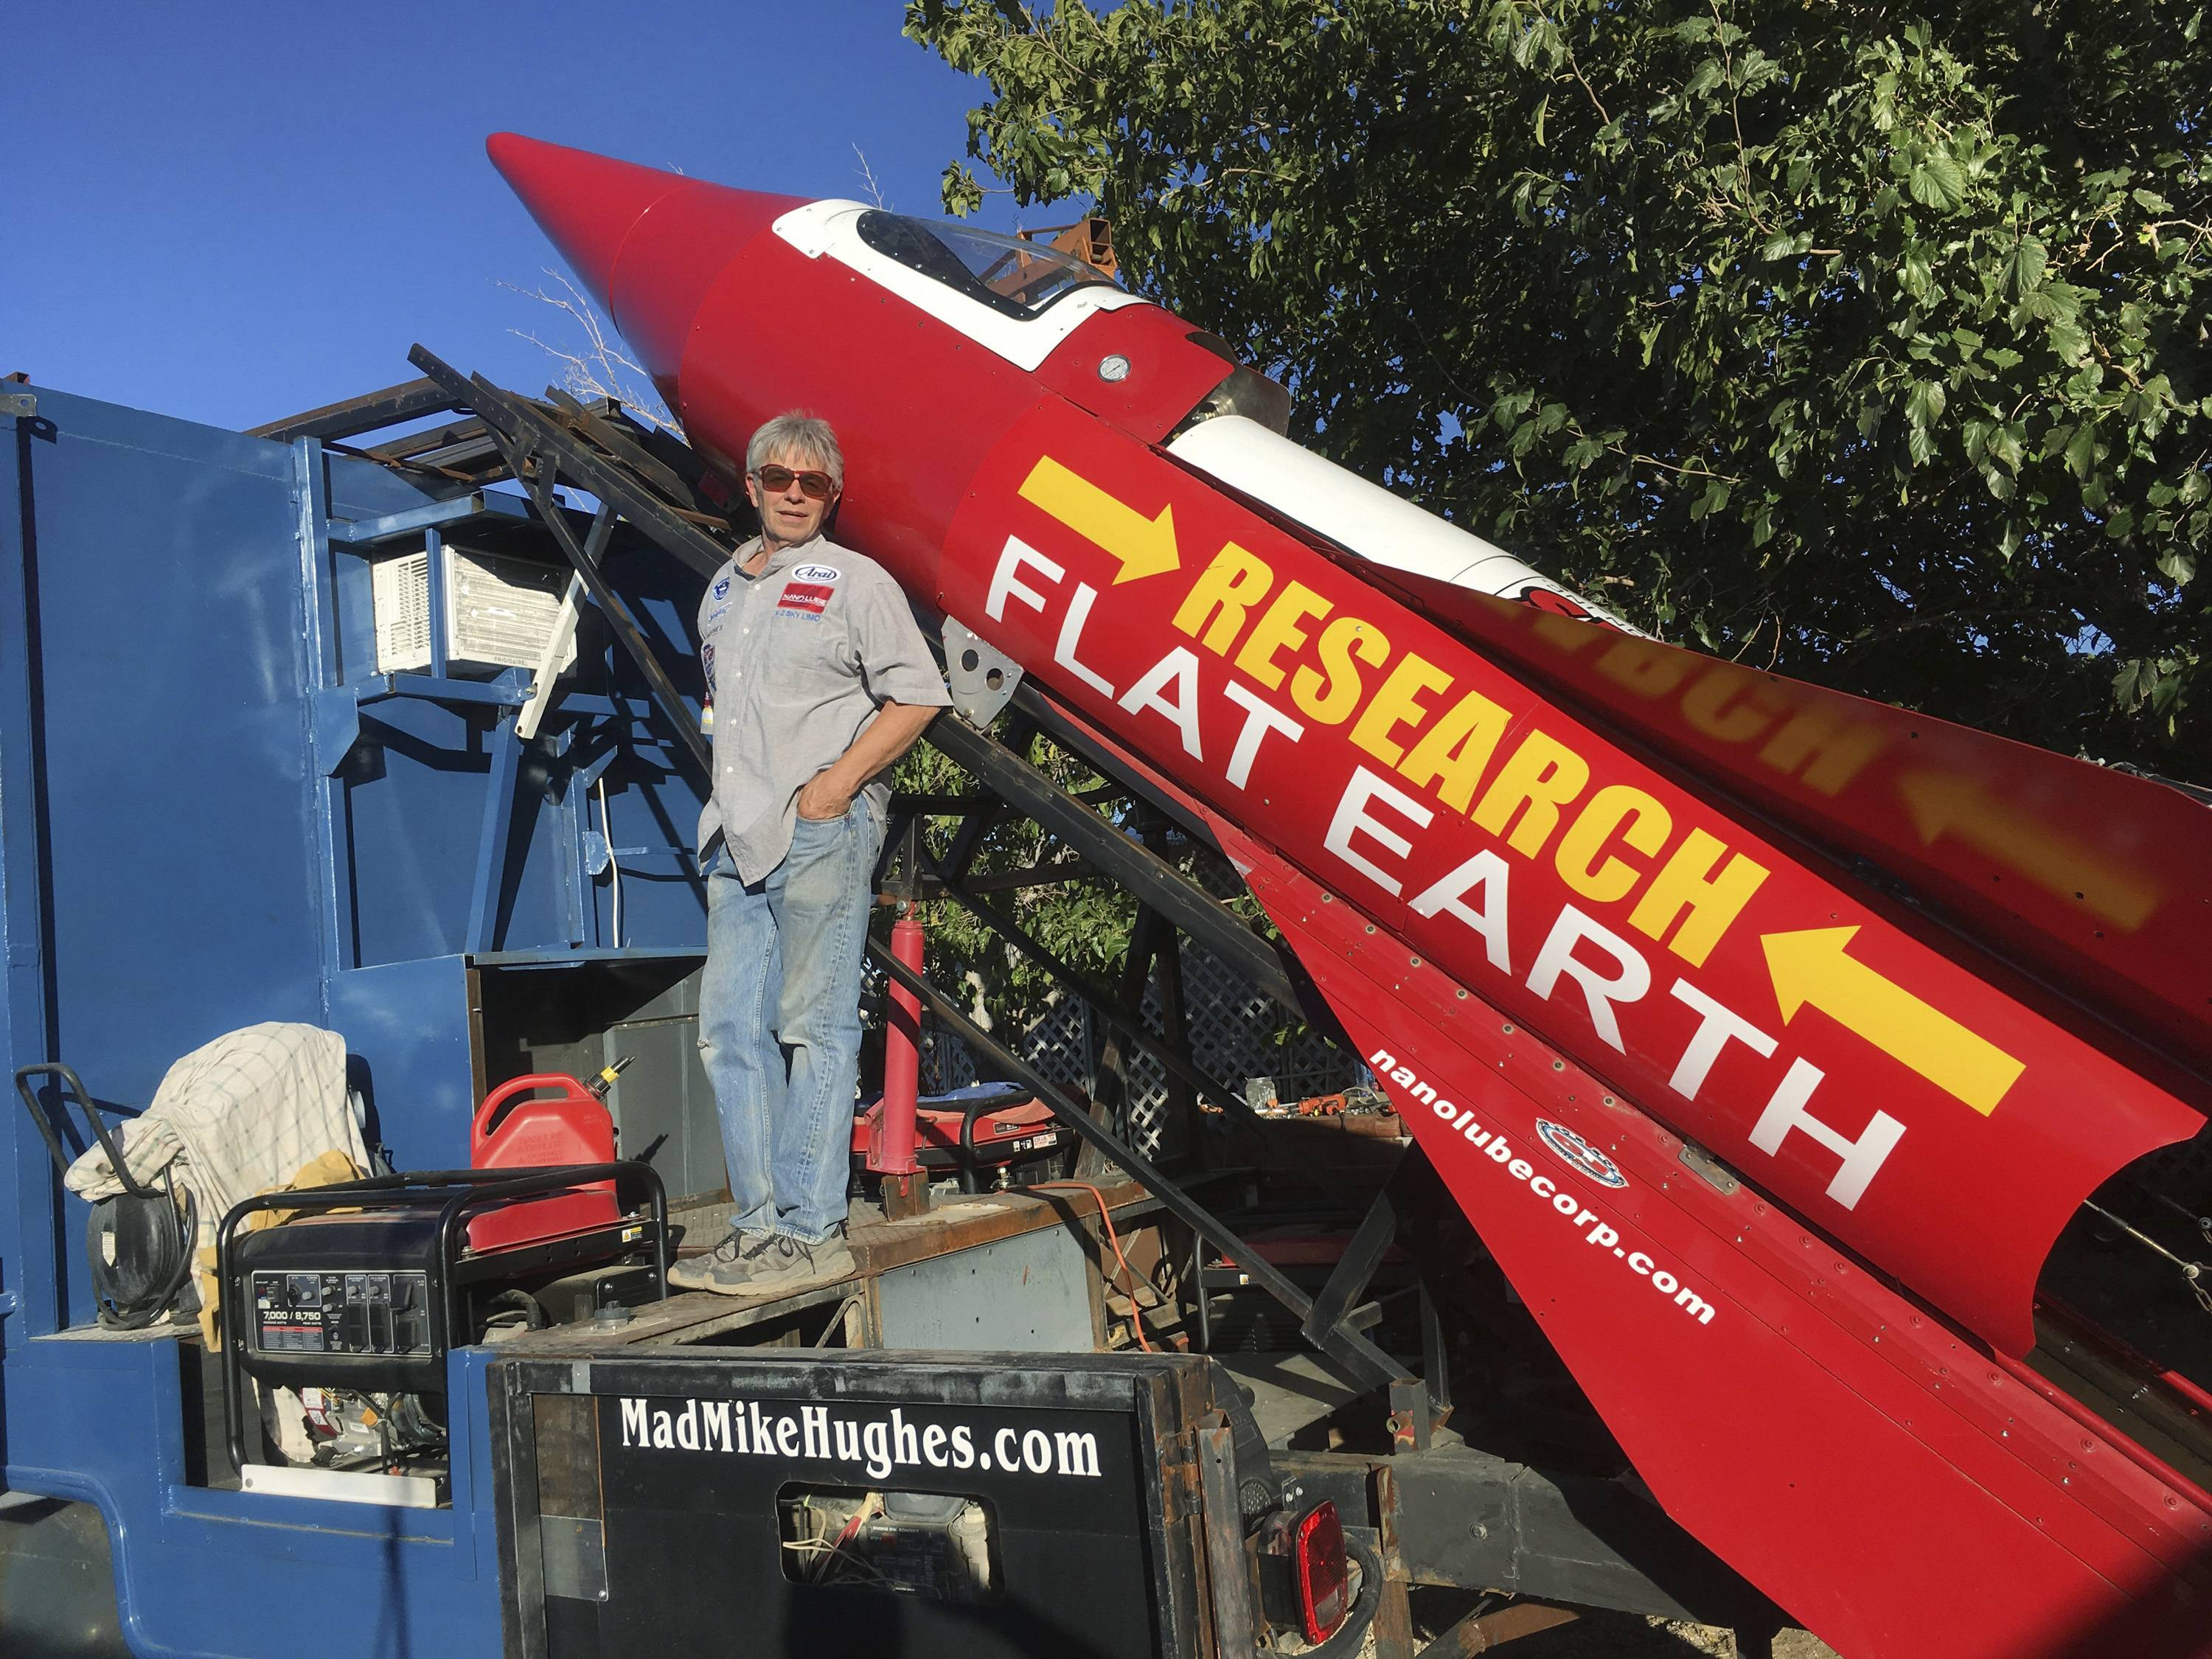 Daredevil/limousine driver Mad Mike Hughes is shown with with his steam-powered rocket constructed out of salvage parts on a five-acre property that he leases in Apple Valley, California. Hughes plans to launch his homemade contraption on Saturday at a speed of roughly 500 miles-per-hour.